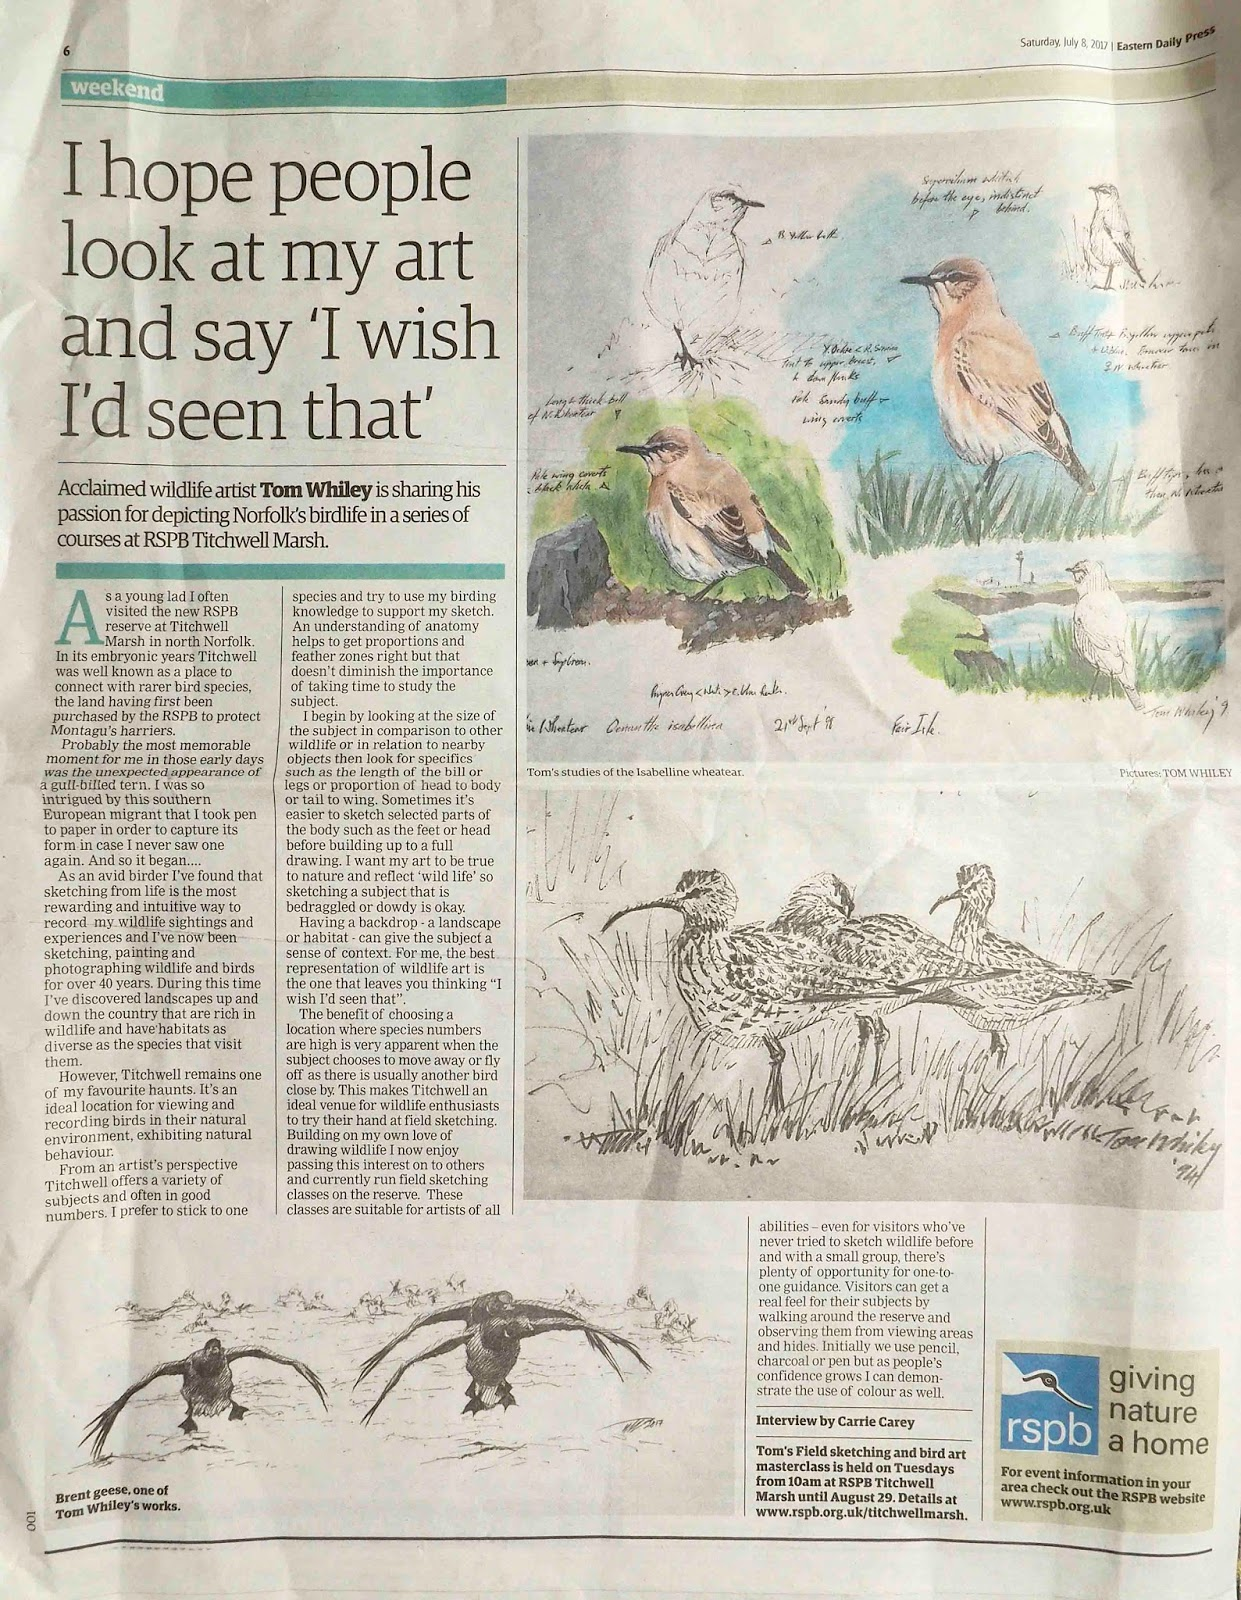 Field Sketching Masterclass | Join wildlife artist Tom Whiley for a bird sketching master class. Tom will guide you through the process of observing wildlife and committing images to paper. Various techniques will be demonstrated with a particular emphasis on field observation. | Titchwell Marsh